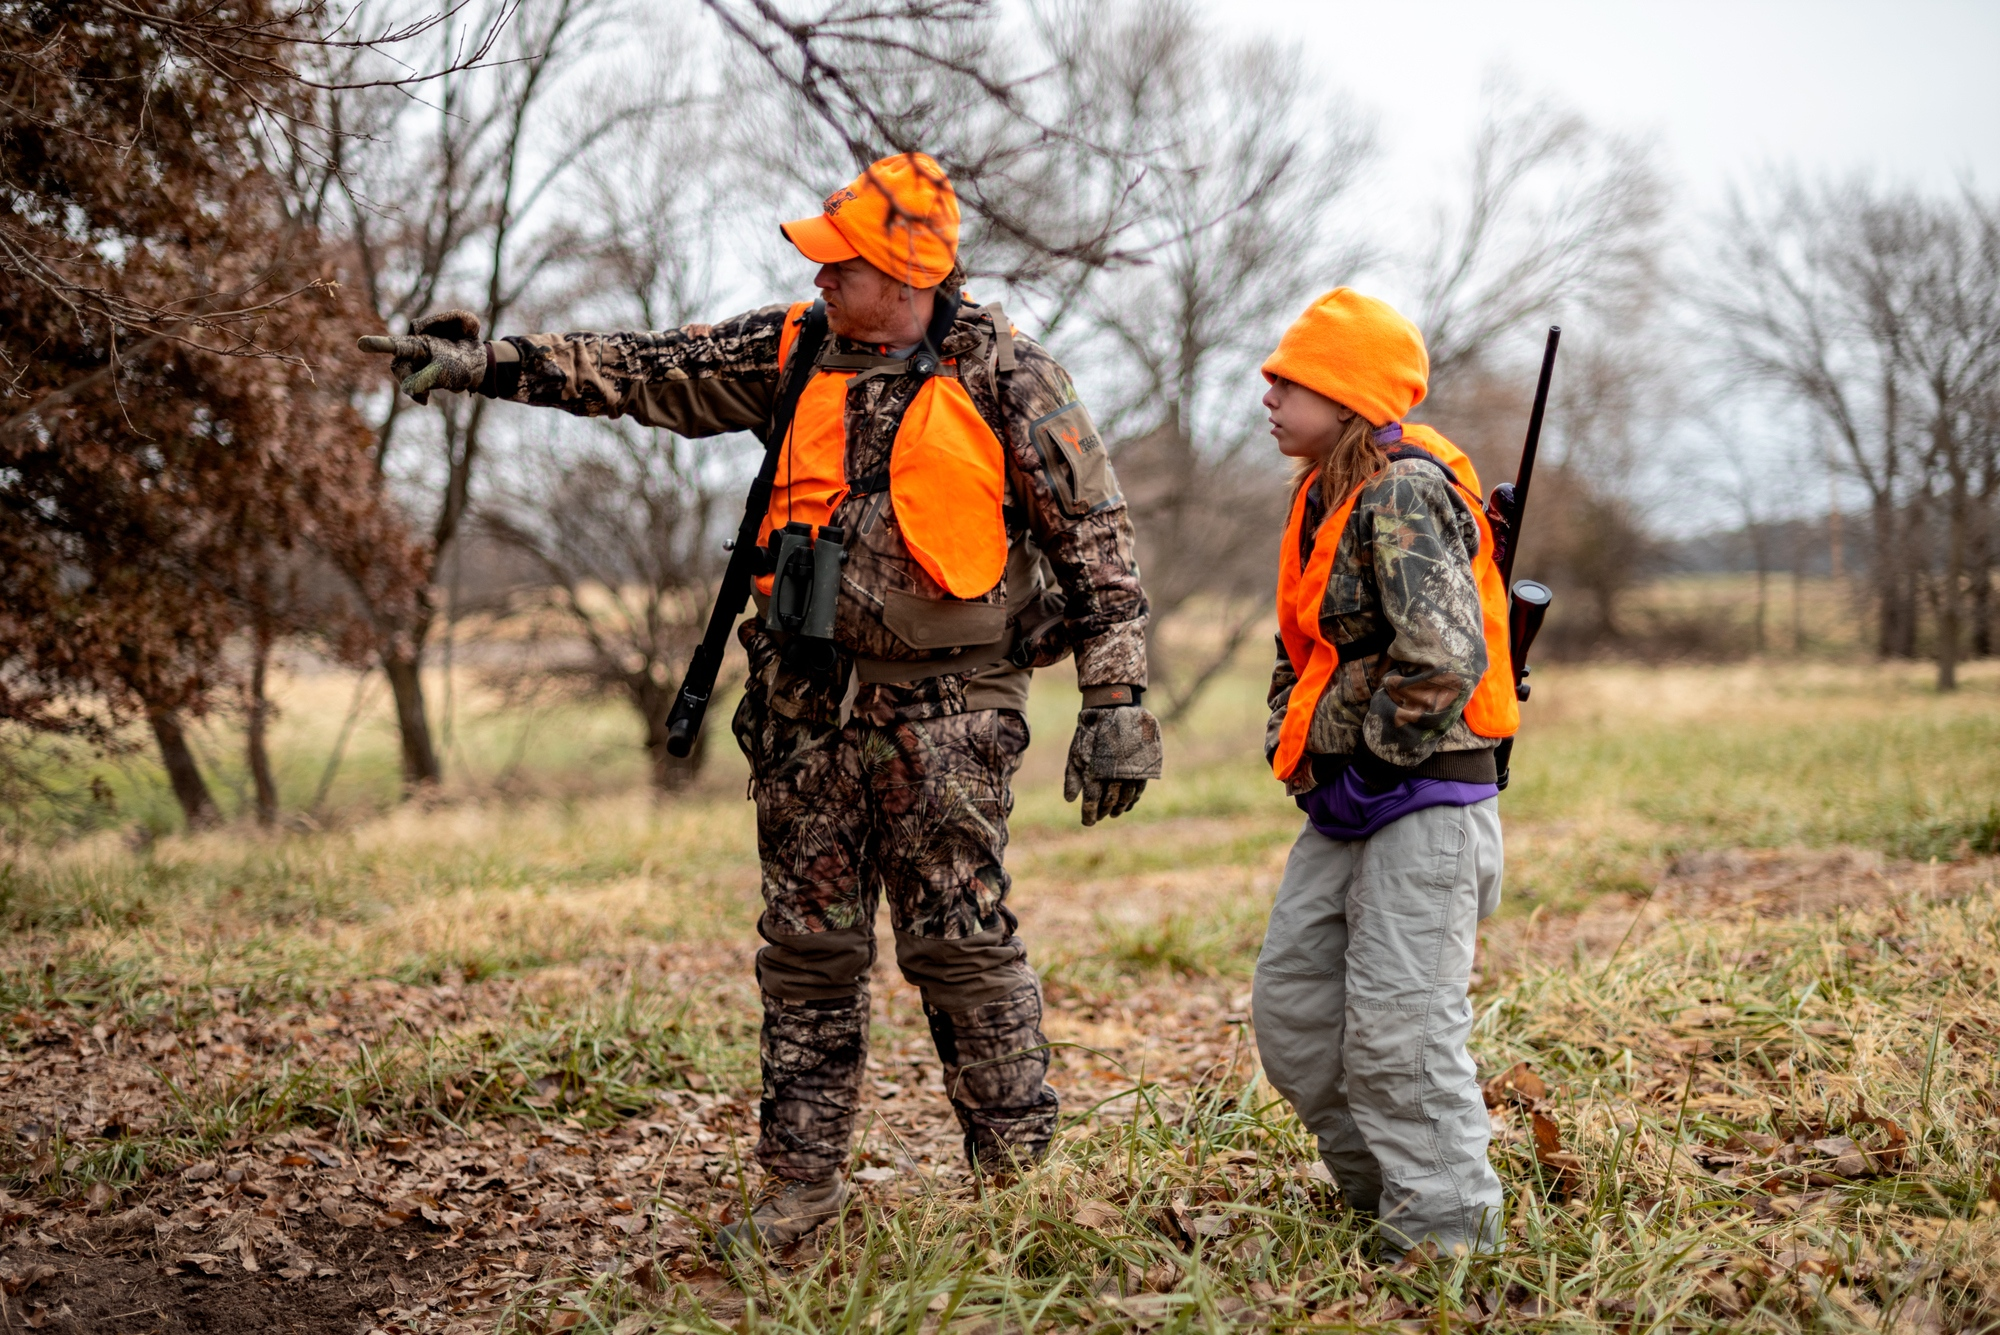 """Michael Jennings shows his daughter Callie Jennings a spot on a nearby tree where a buck has been licking the end of a branch on November 18, 2018 outside Centralia, Mo. """"I had never seen that before,"""" Callie Jennings said, """"[They do that] to leave their scent so that way they can attract does."""""""